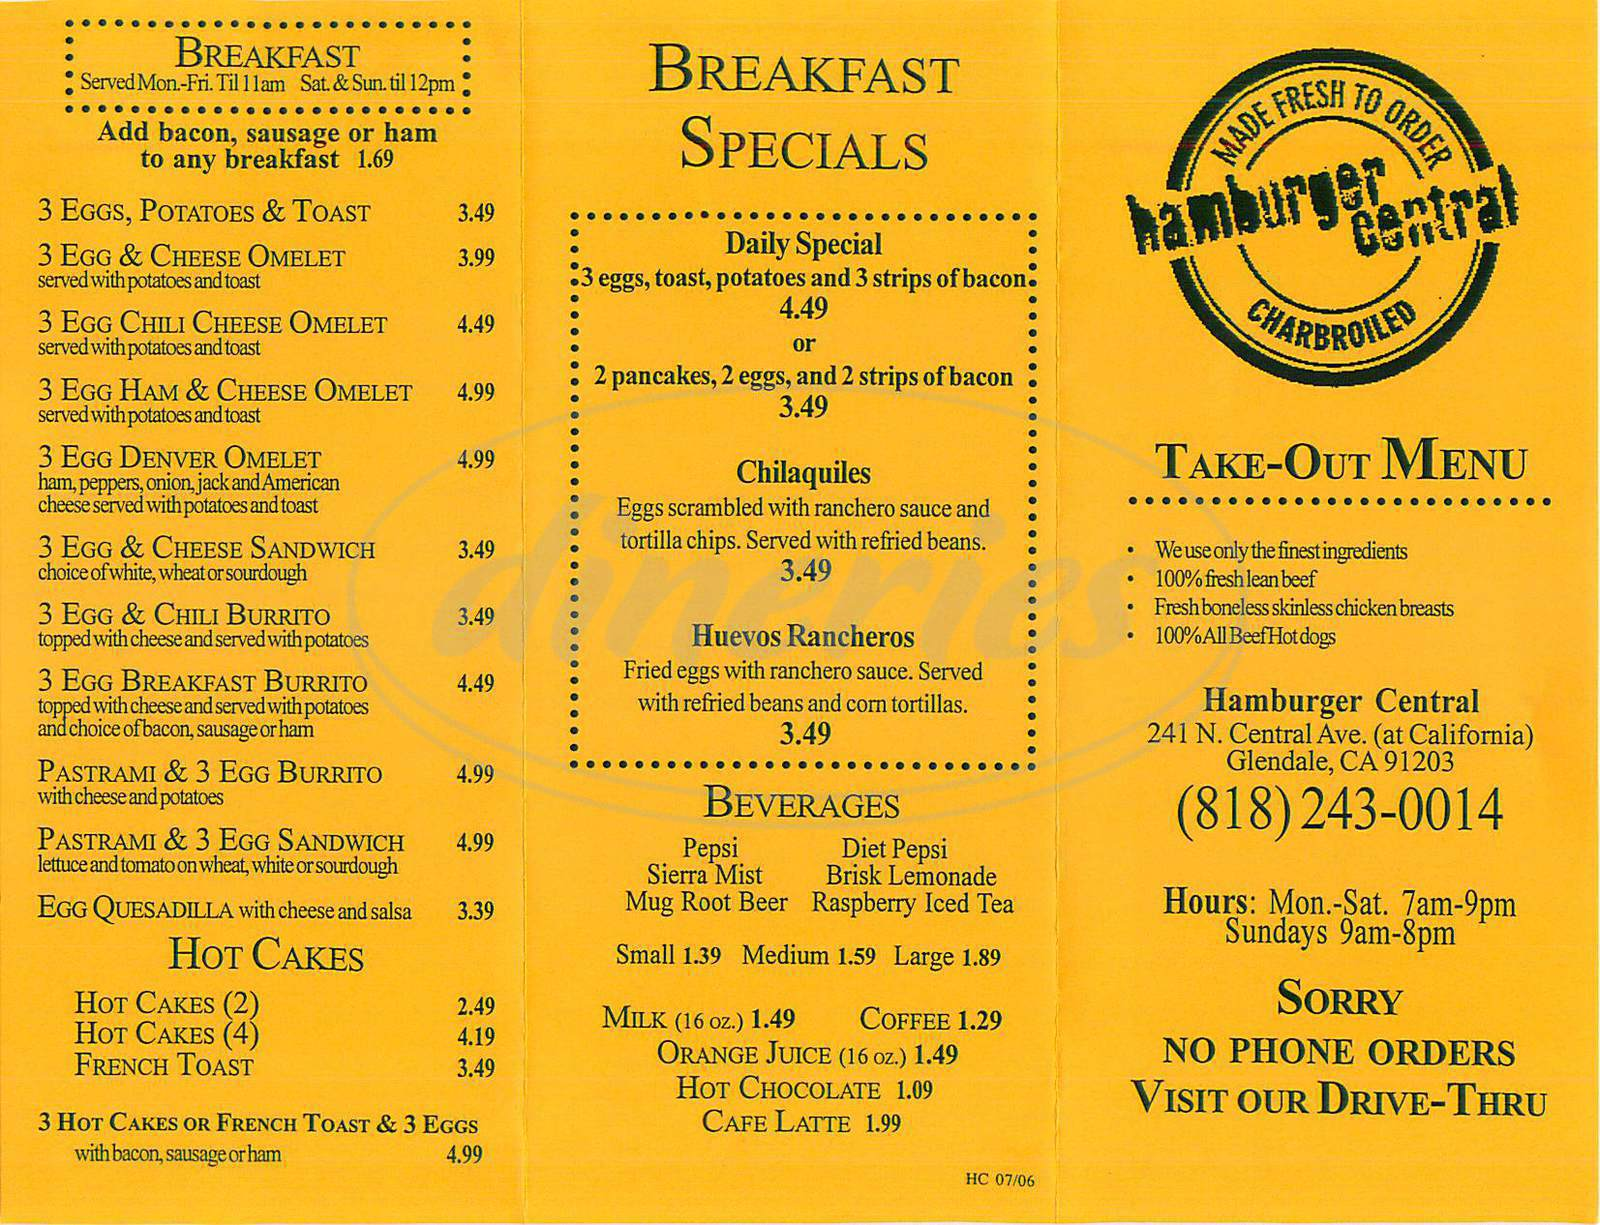 menu for Hamburger Central